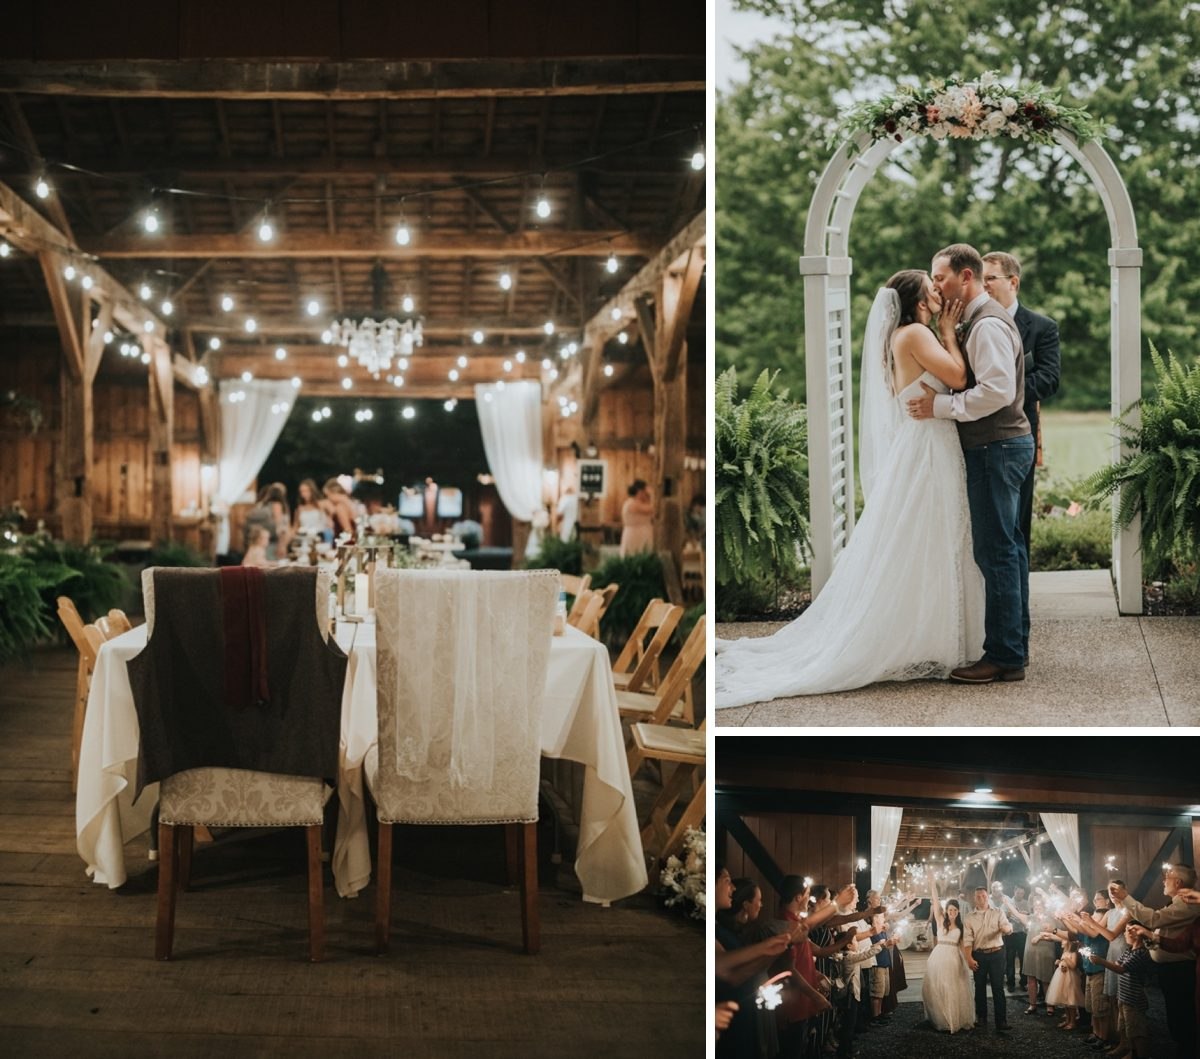 Rustic Barn or Outdoor Wedding Venues in Pittsburgh ...